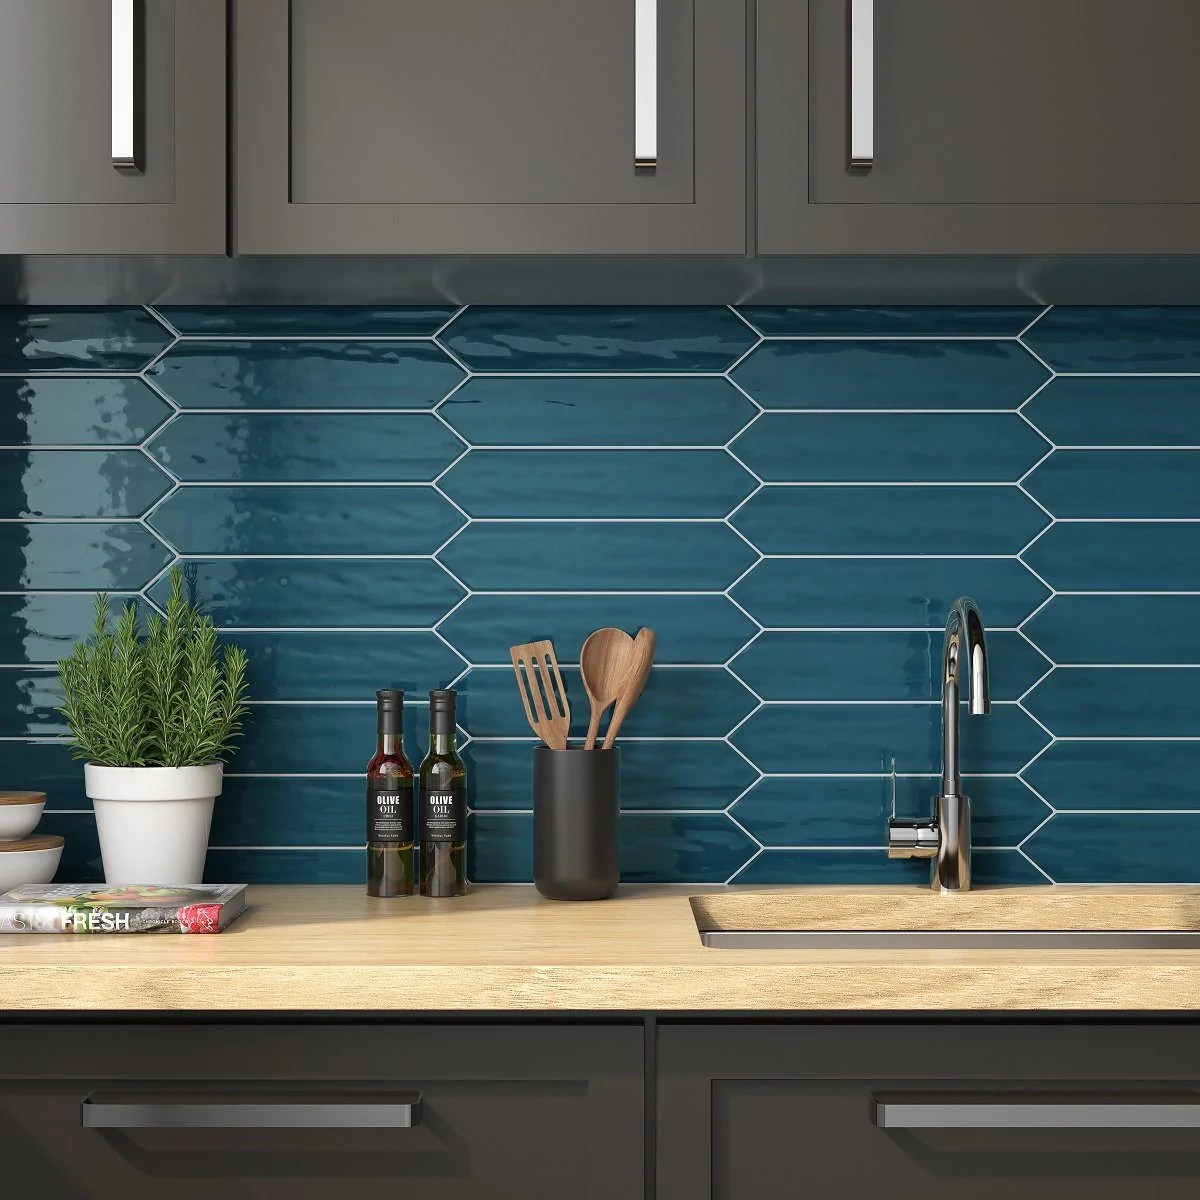 chanelle peacock green 3 x12 picket ceramic subway tile